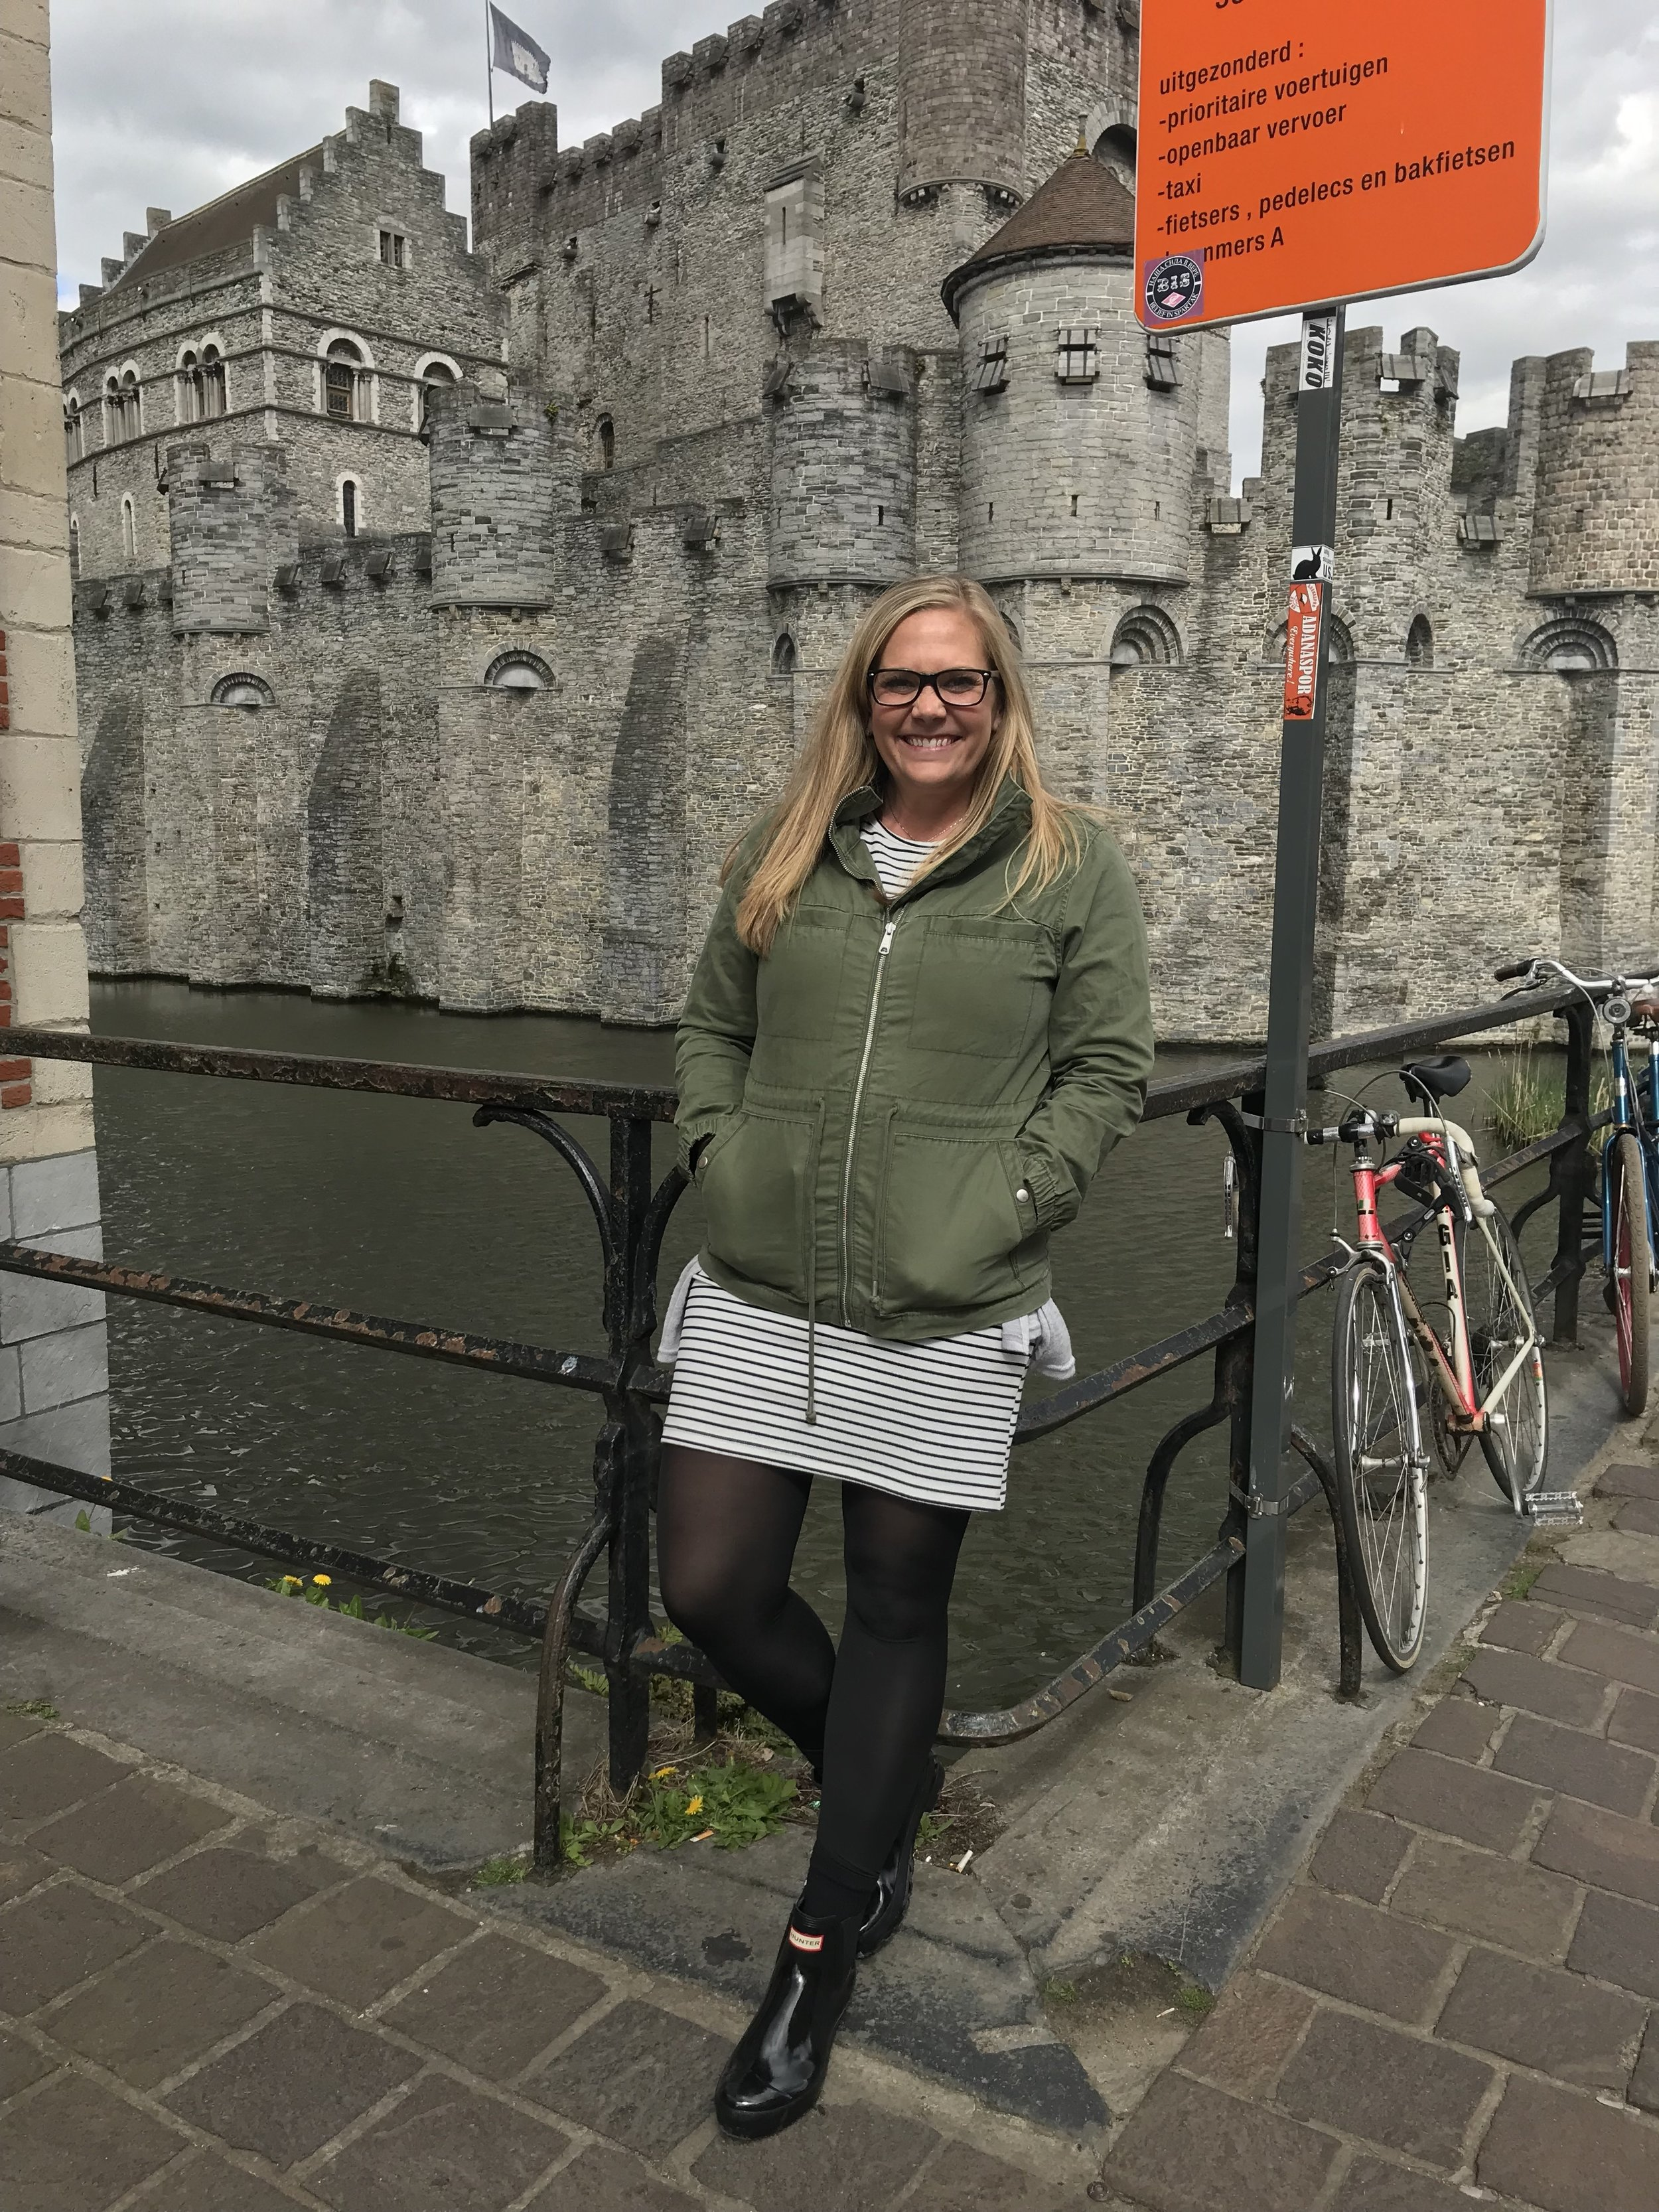 A super cool castle in Gent and my super comfy Hunter boots.